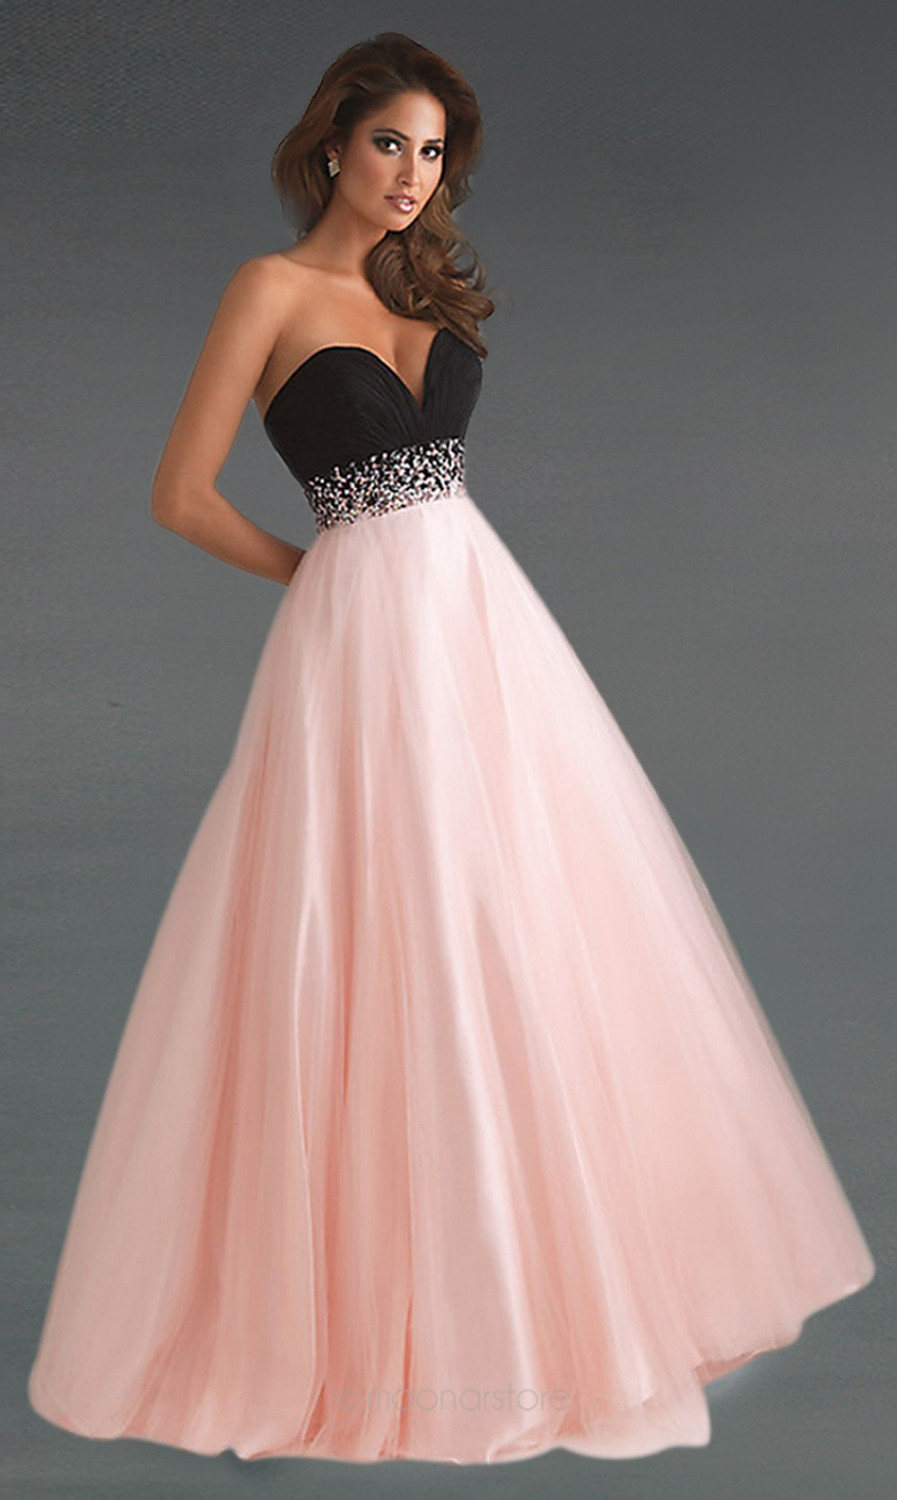 Free Shipping Custom made 2014 Hot Sale Sweetheart Patchwork Style A line Beaded Organza Prom Dress FBP093-in Prom Dresses from Apparel & Accessories on Aliexpress.com